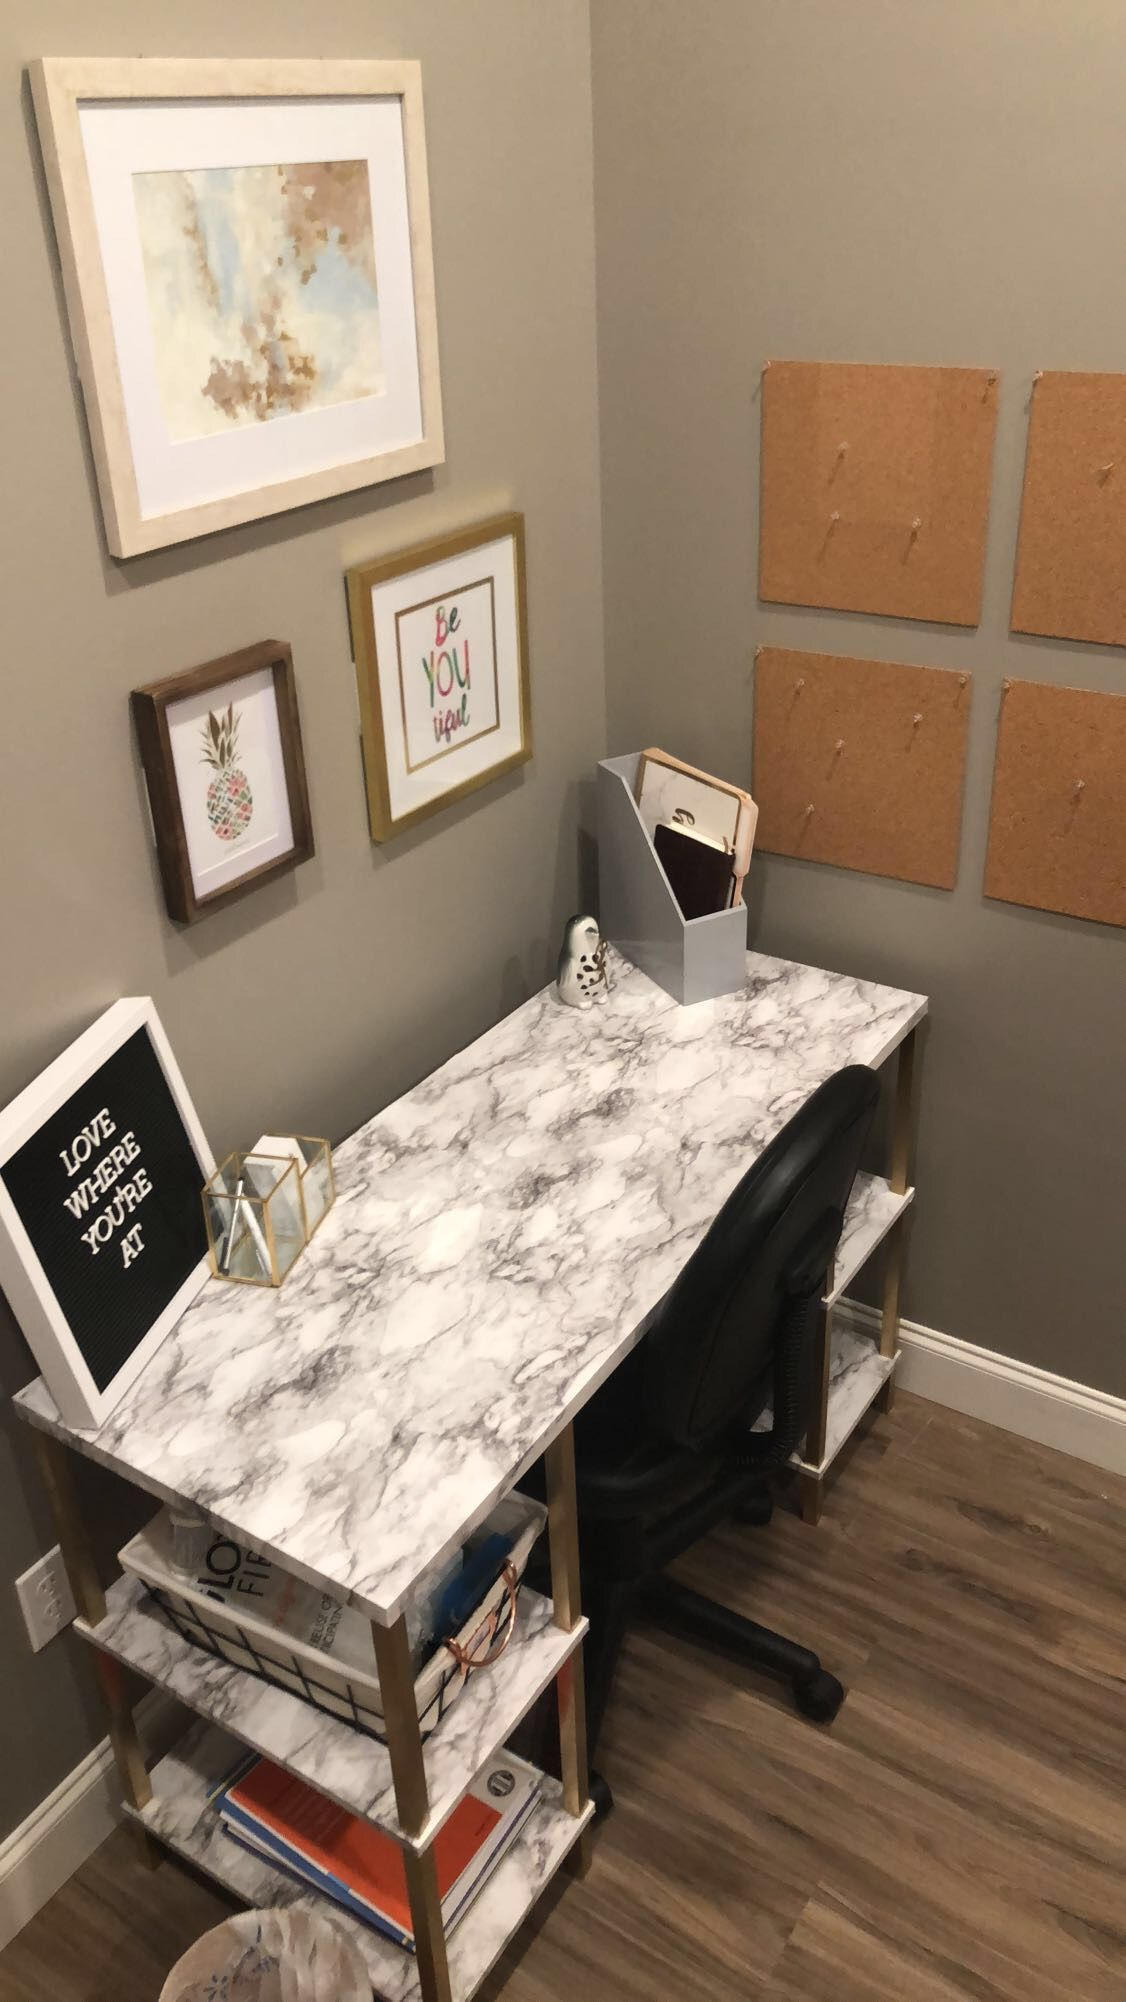 Loving This Desk Used Marble Contact Paper And Spray Painted The Legs Metallic Gold Office Diy College Apartment Decor Contact Paper Diy Apartment Decor